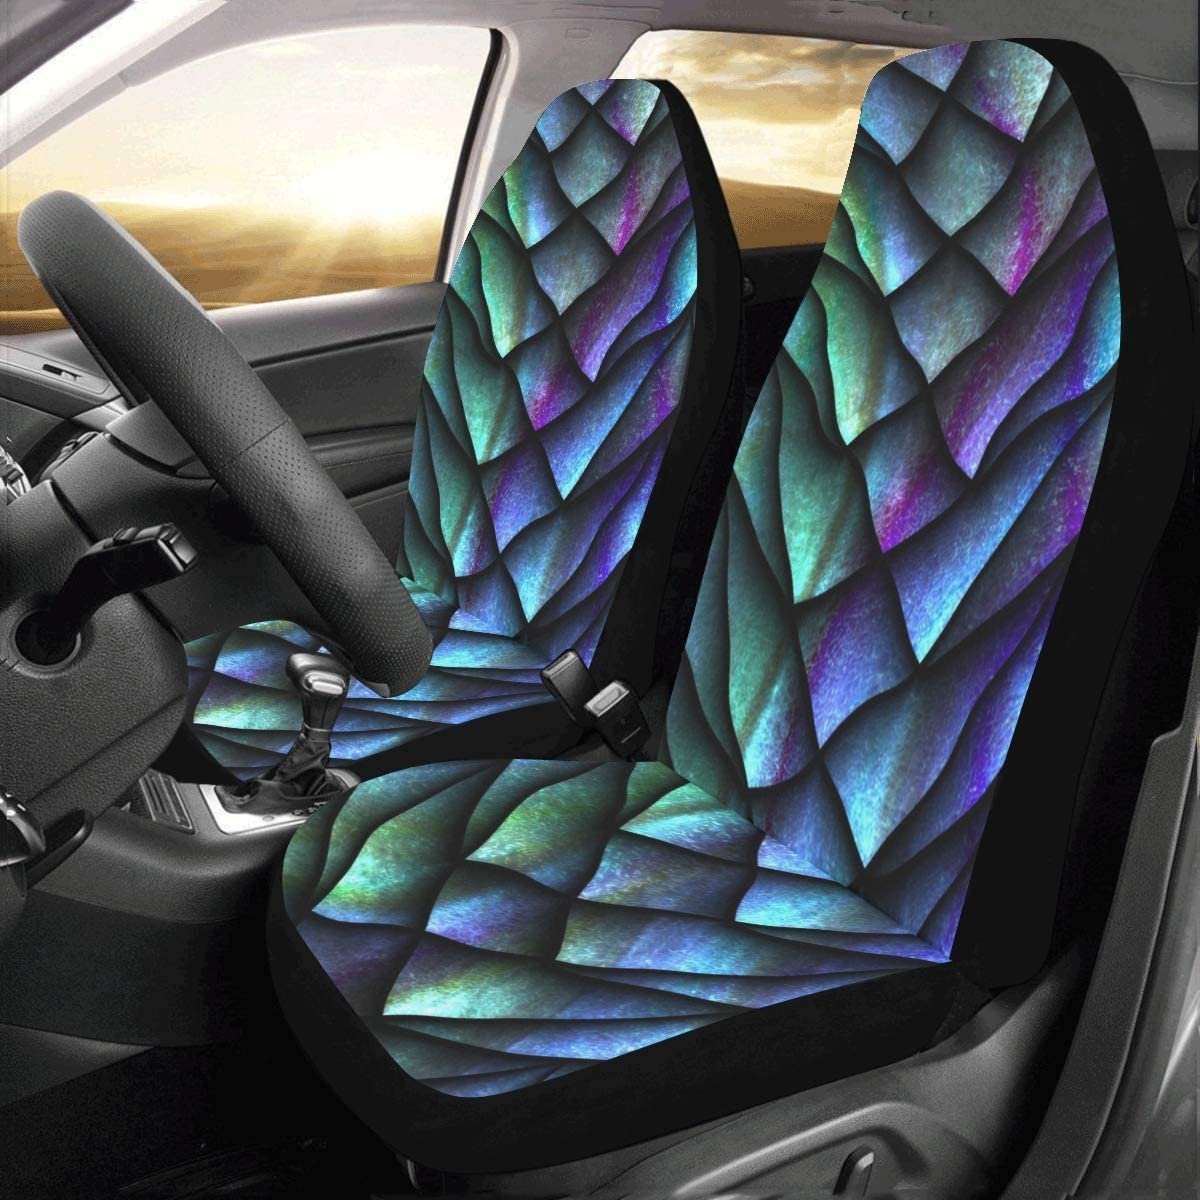 set Of 2 Front Chinese Dragon Scale Metallic Texture Custom New Universal Fit Auto Drive Car Seat Covers Protector For Women Automobile Jeep Truck Suv Vehicle Full Set Accessories For Adult Baby